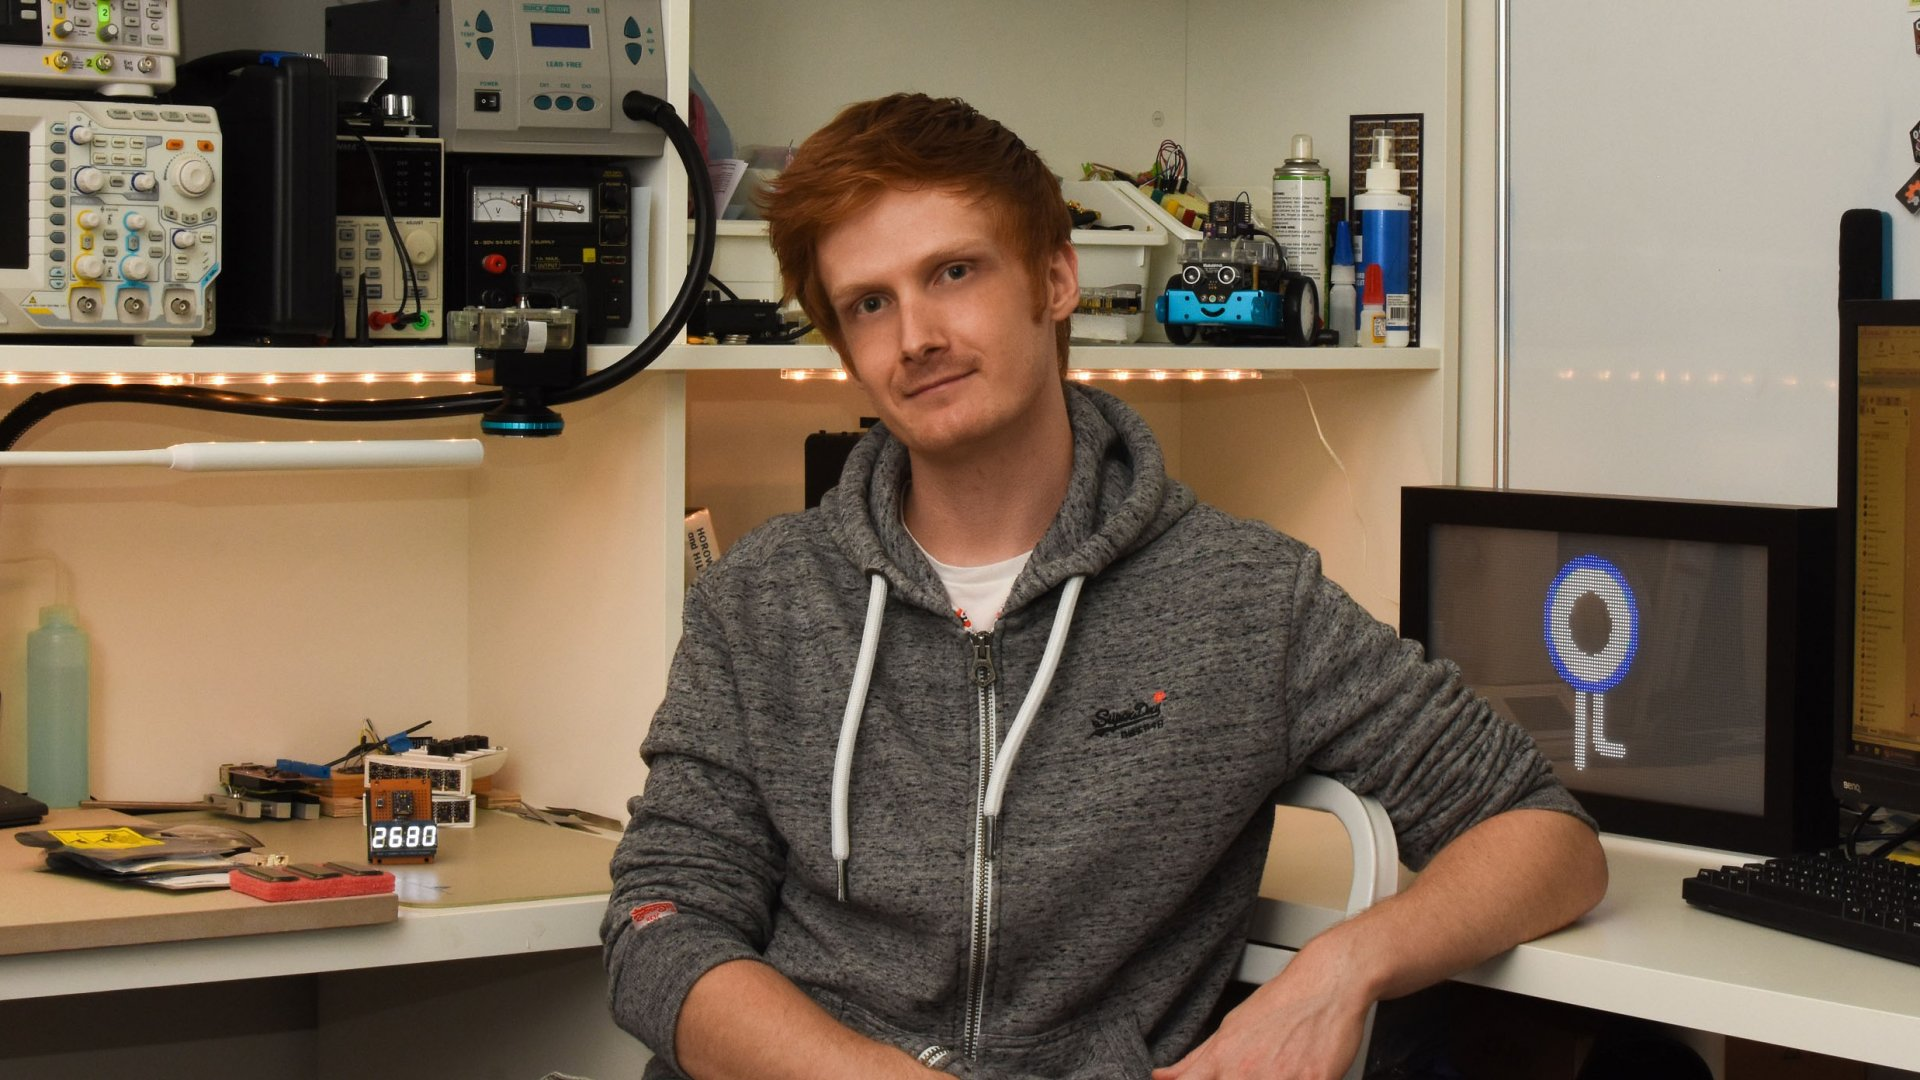 Blair Wyatt in his home lab, where he developed his Kickstarter project, the Social Distancing Badge.